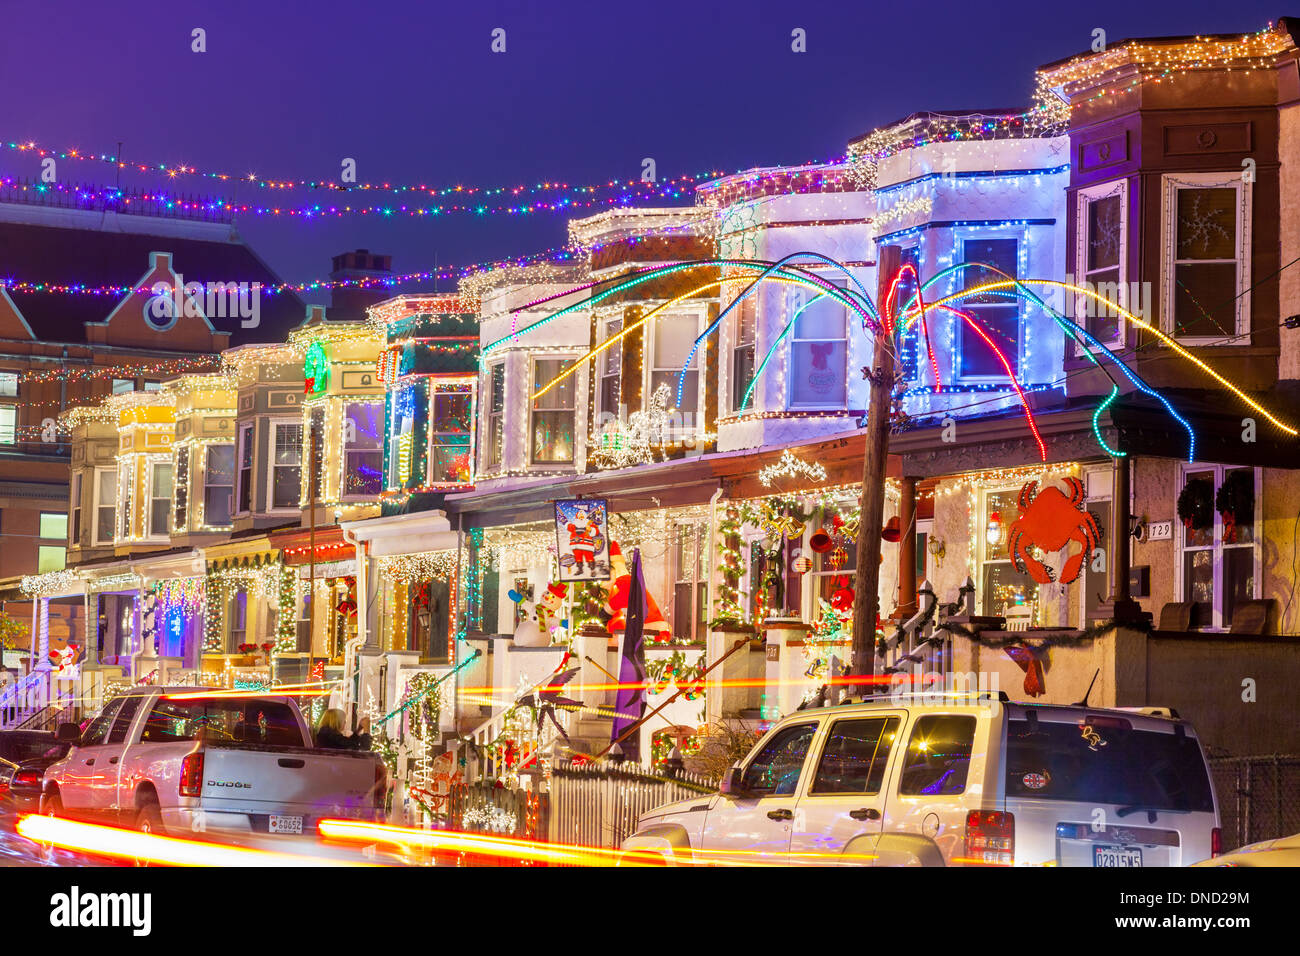 community christmas lighting miracle on 34th street hampden baltimore maryland - Christmas In Baltimore